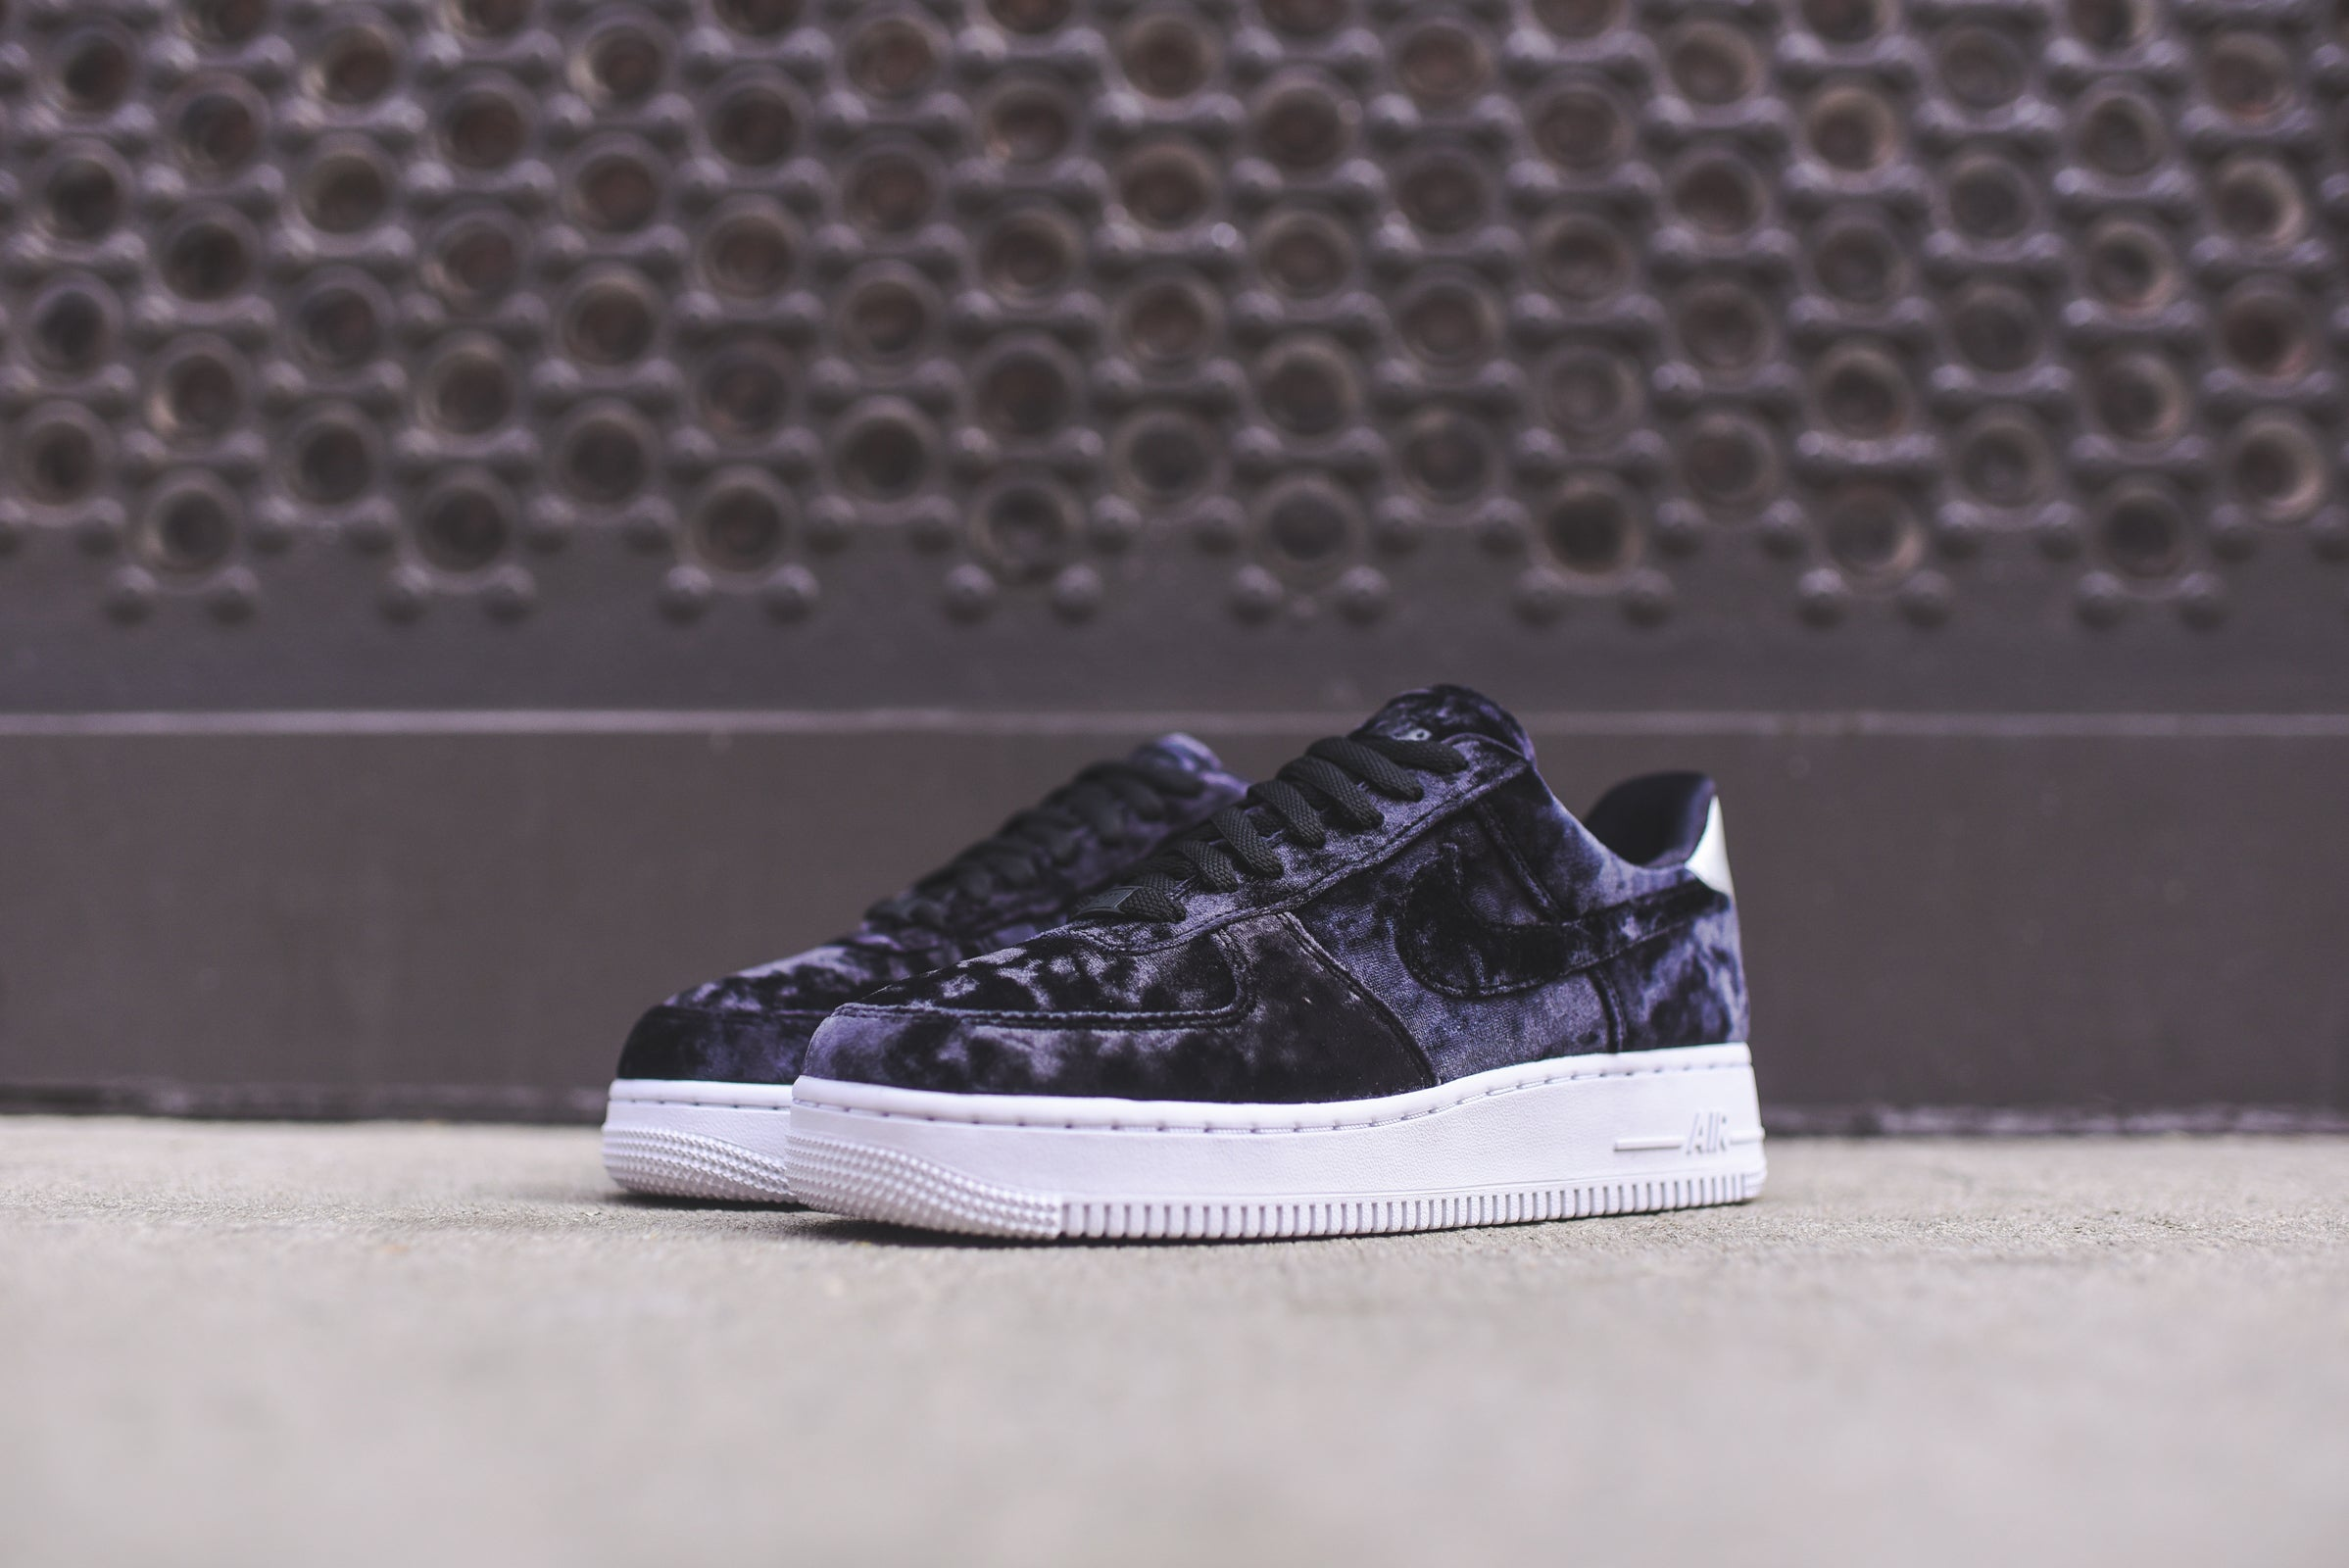 Nike WMNS Air Force 1 PRM - Black / White / Silver